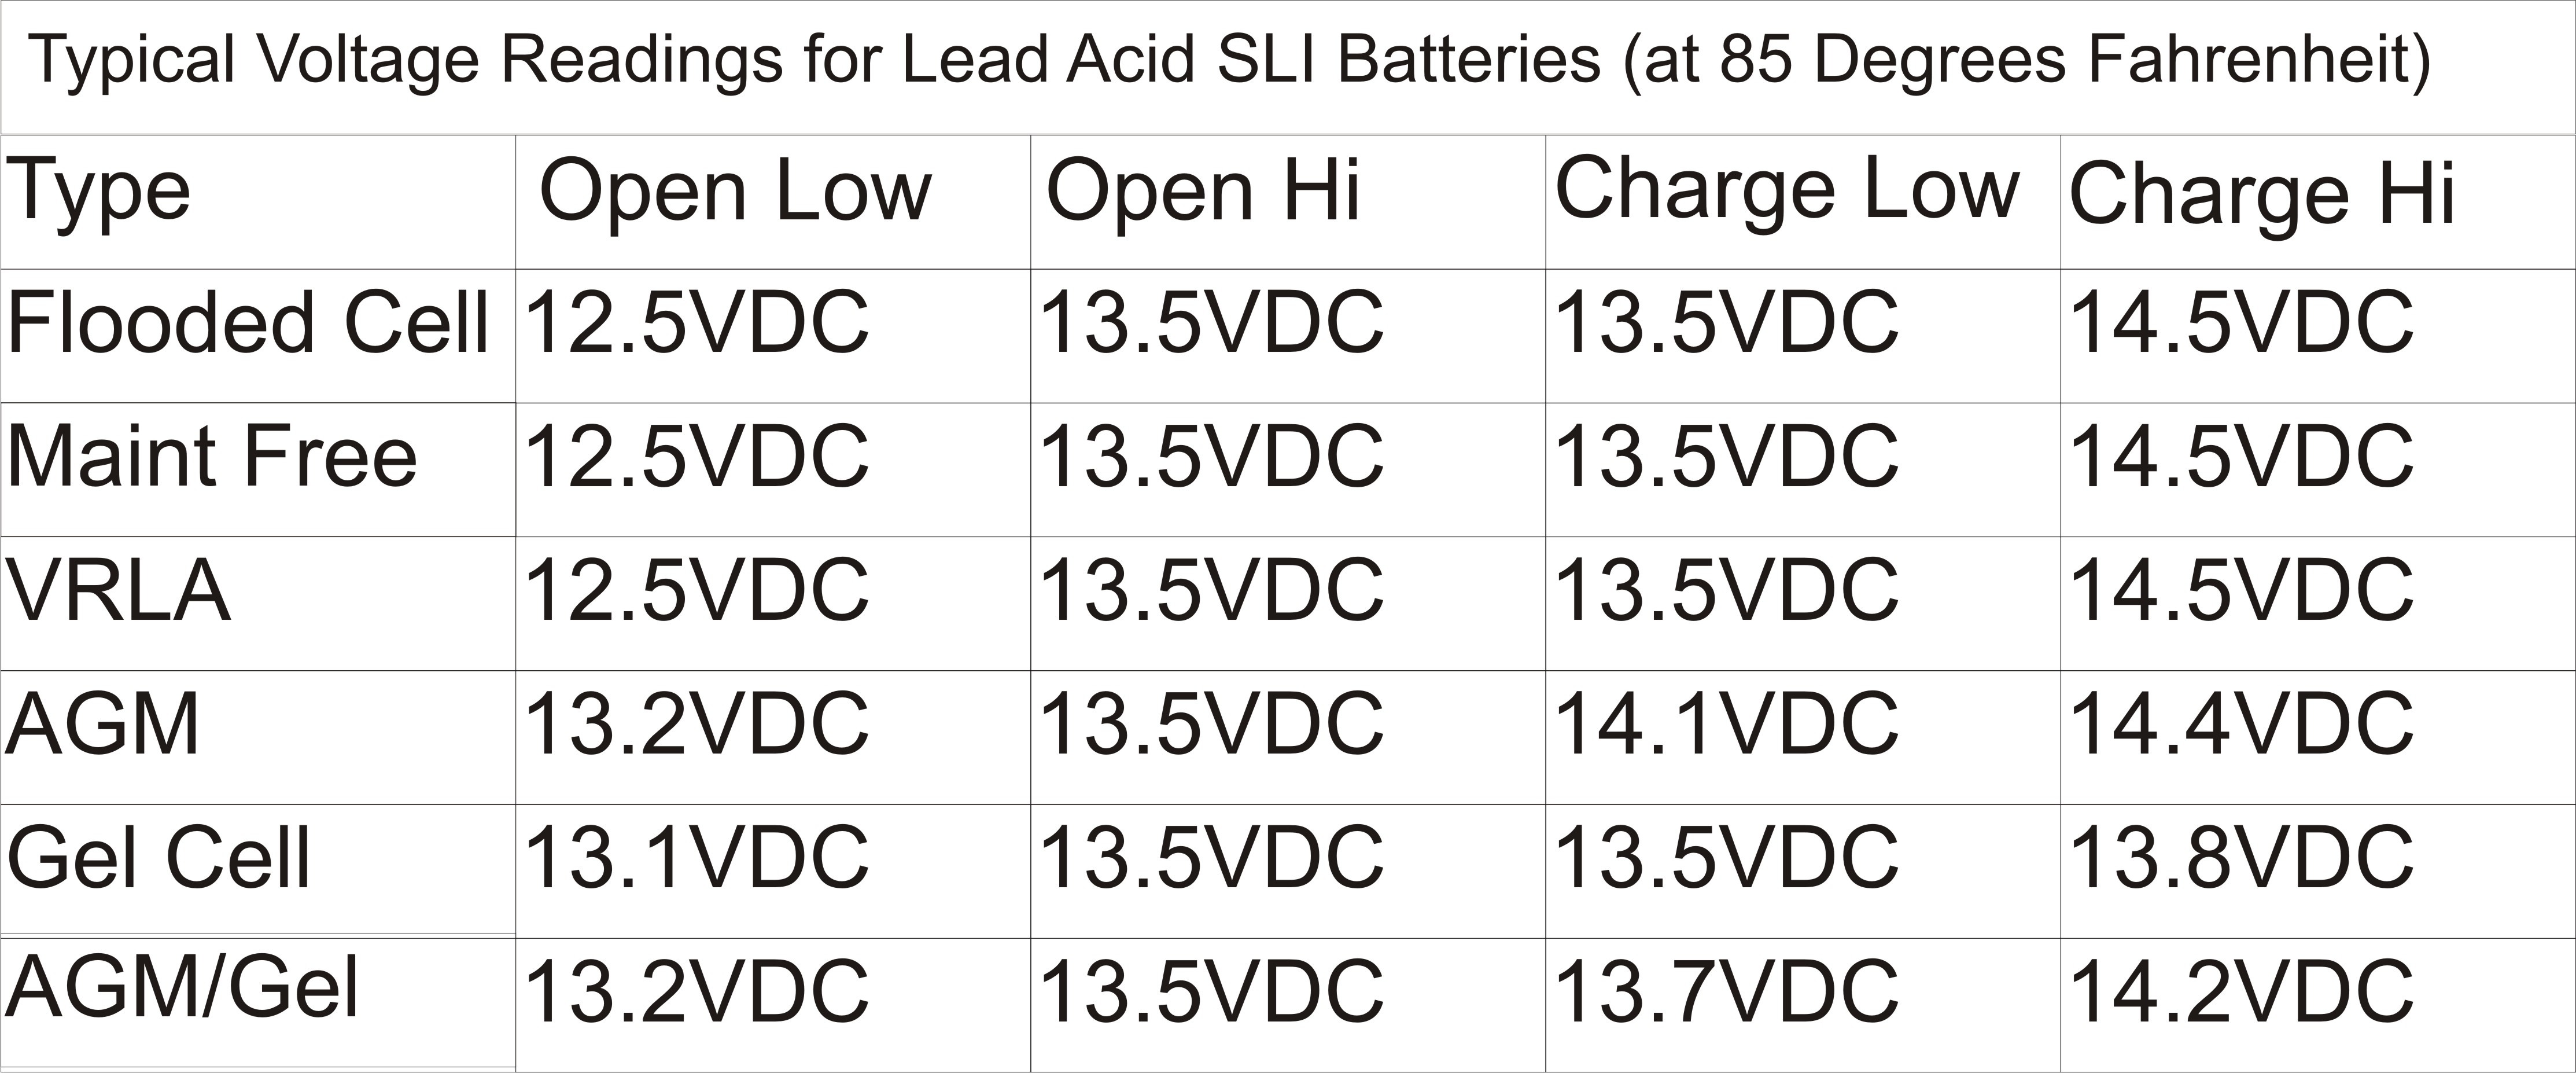 Extending Battery Life A Routine Maintenance Schedule Can Dramatically Improve The Life Of Flooded Lead Acid Batteries also Ii 25 in addition Right Battery Right Application also ACE 3215 furthermore 271736835670. on lead acid battery caps